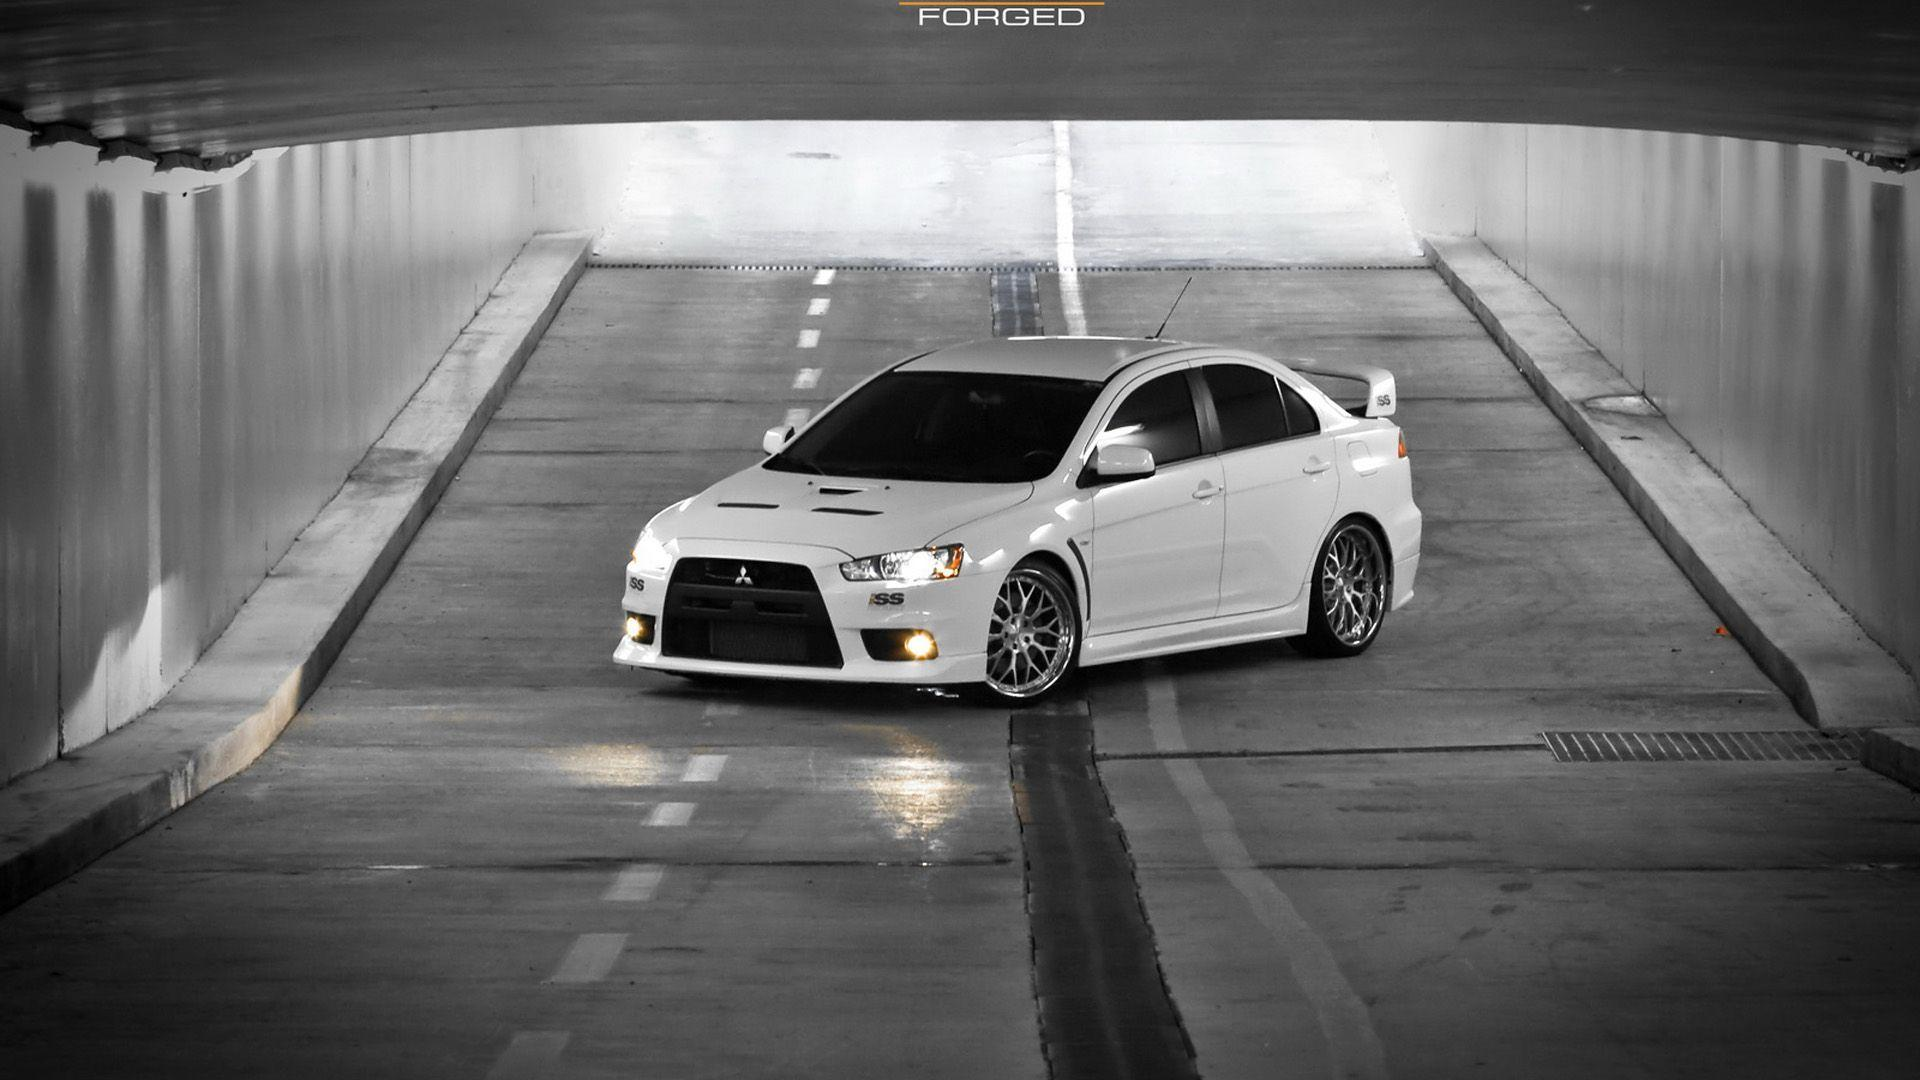 Mitsubishi Lancer Evo X Wallpapers